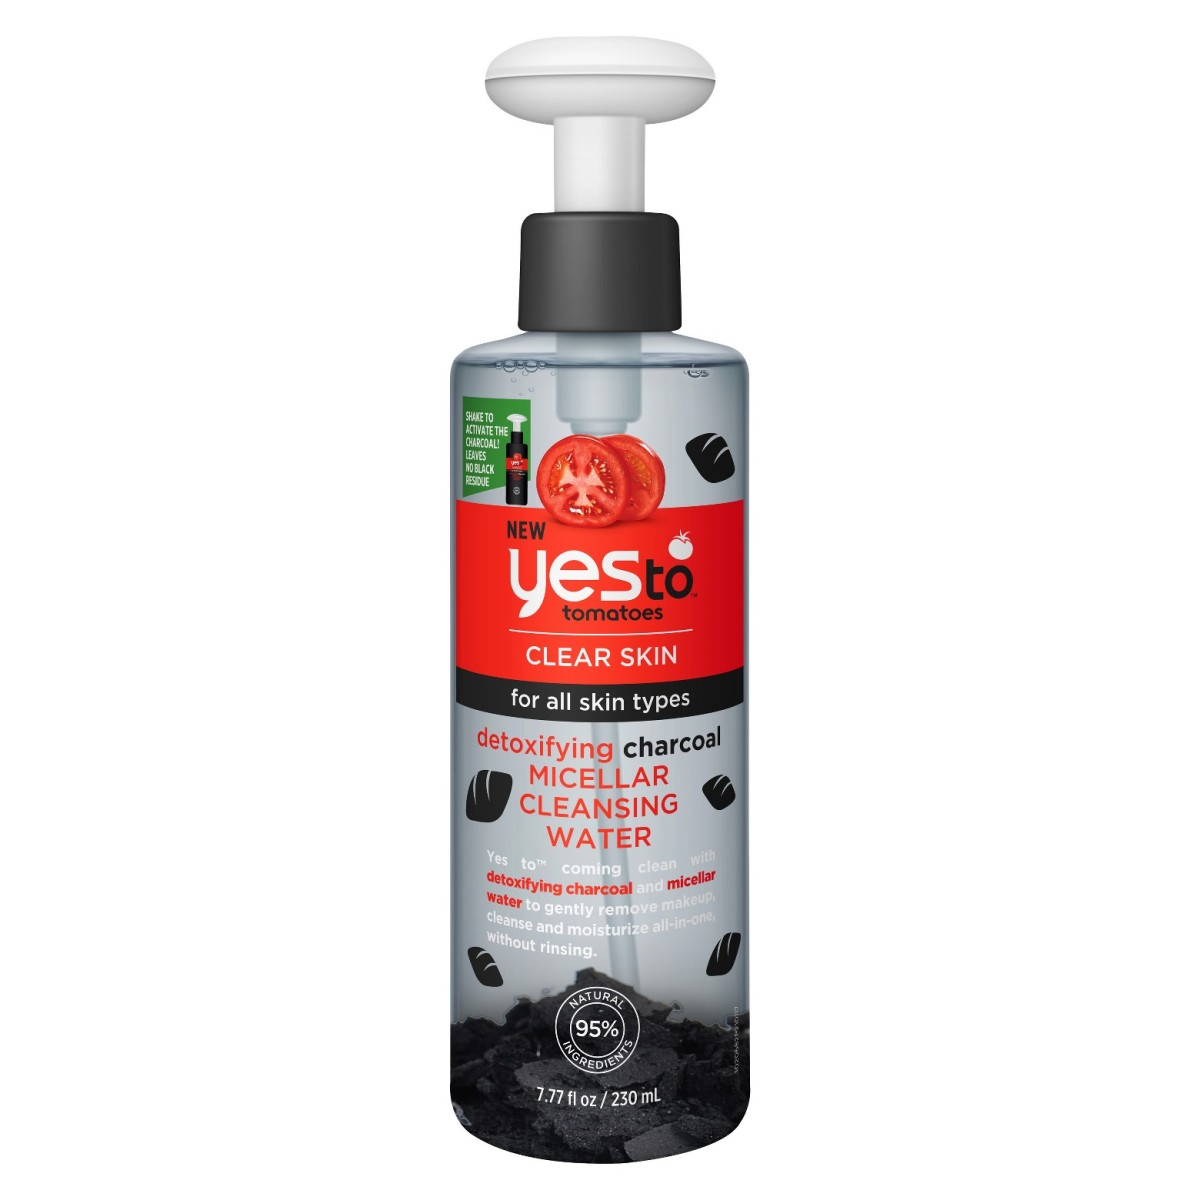 Yes to Tomatoes Detoxifying Charcoal Micellar Cleansing Water, $8.99, available at Target.